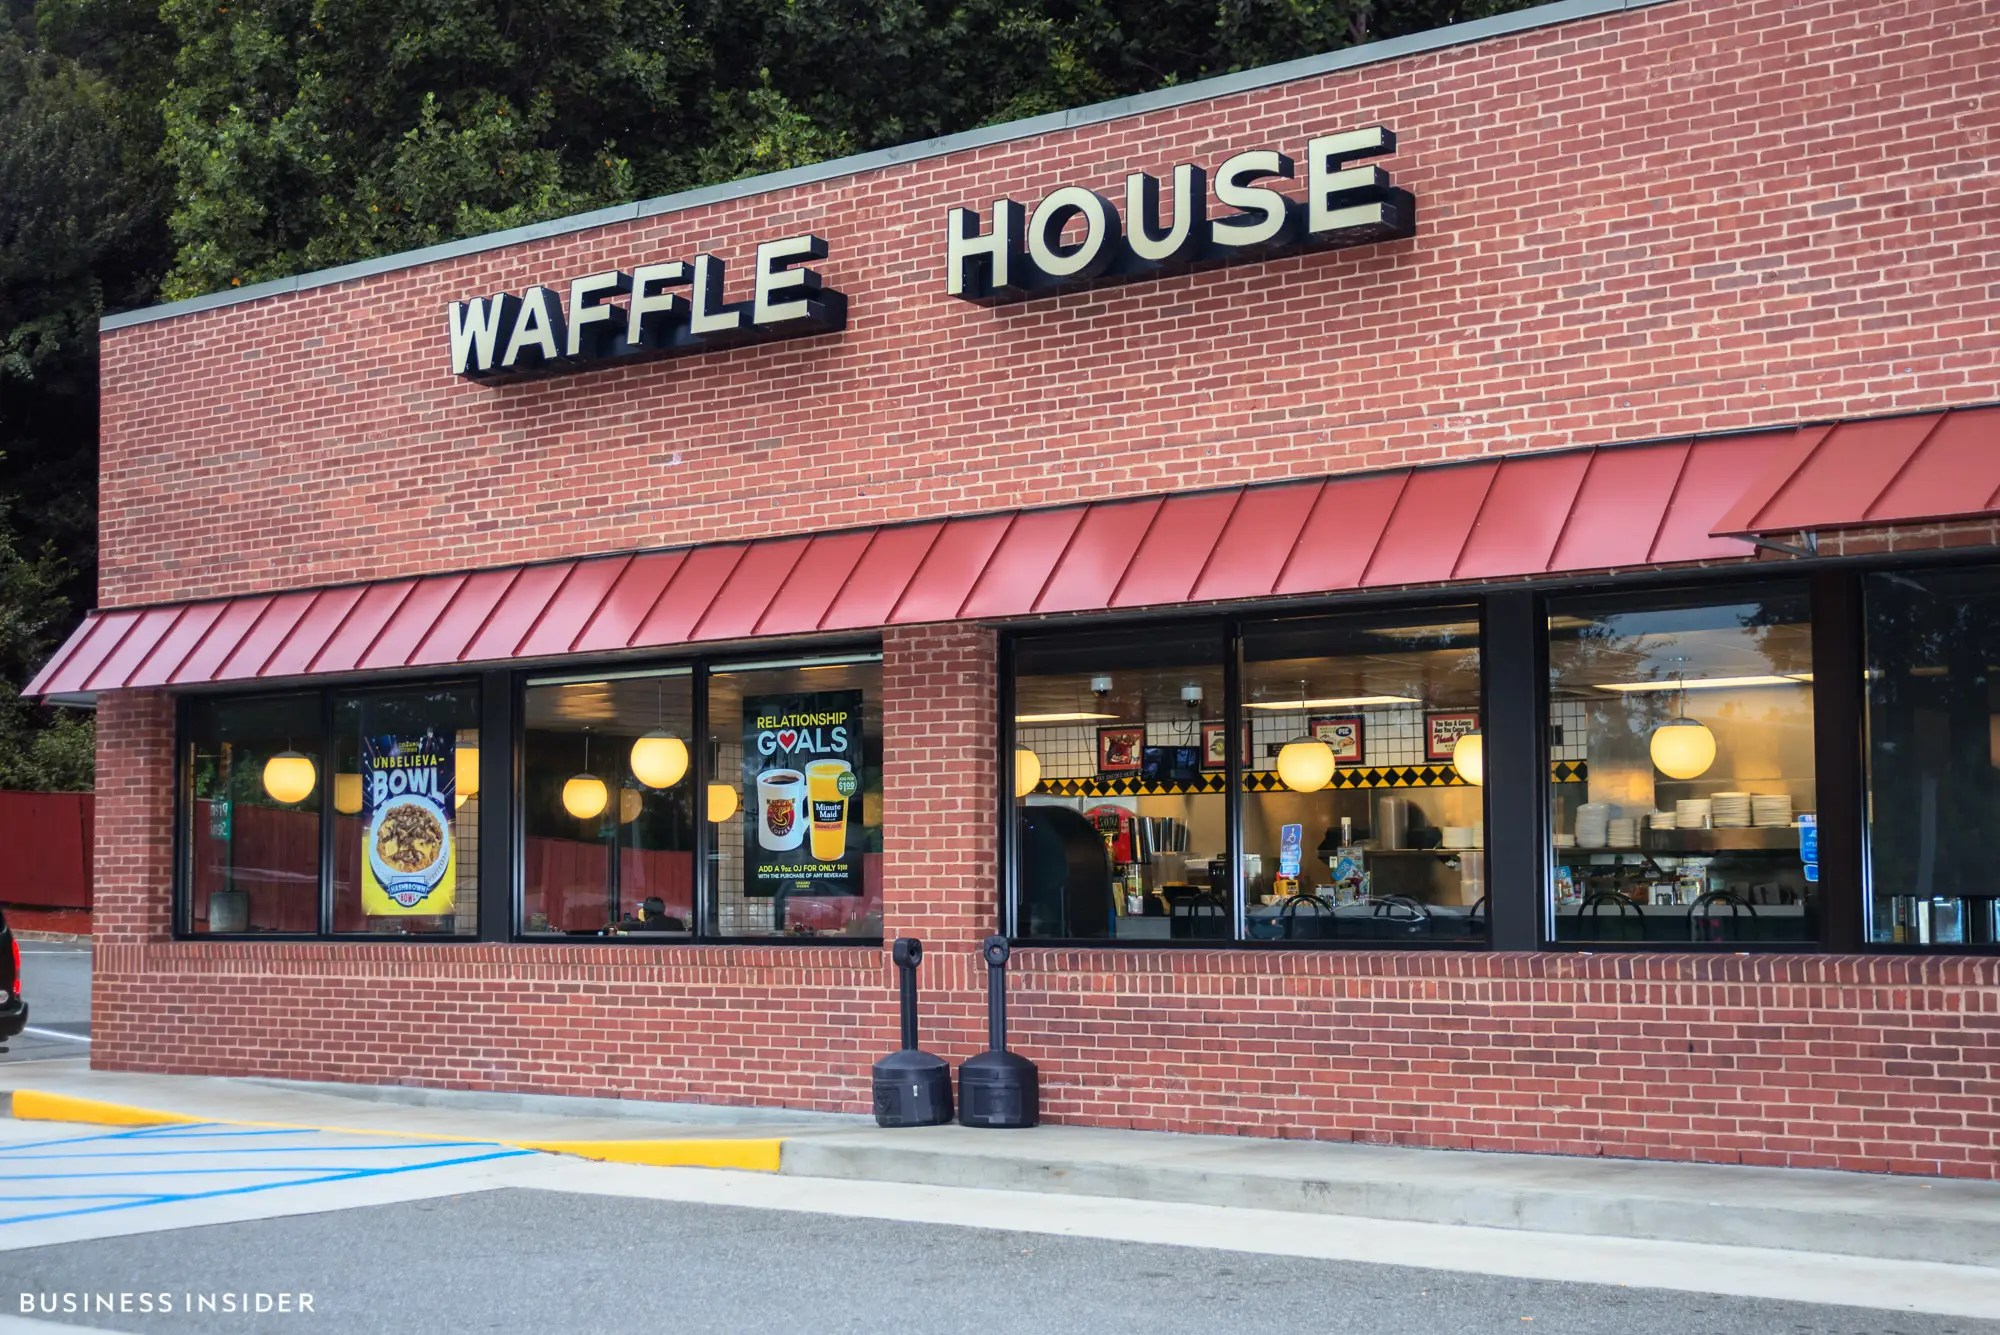 Waffle House was founded in 1955 by Tom Forkner and Joe Rogers in Atlanta, Georgia.  Today, the chain has over 1,800 locations in 25 states. As with most Waffle Houses, the outside appearance wasn't much to look at — but we were more interested in what's inside.